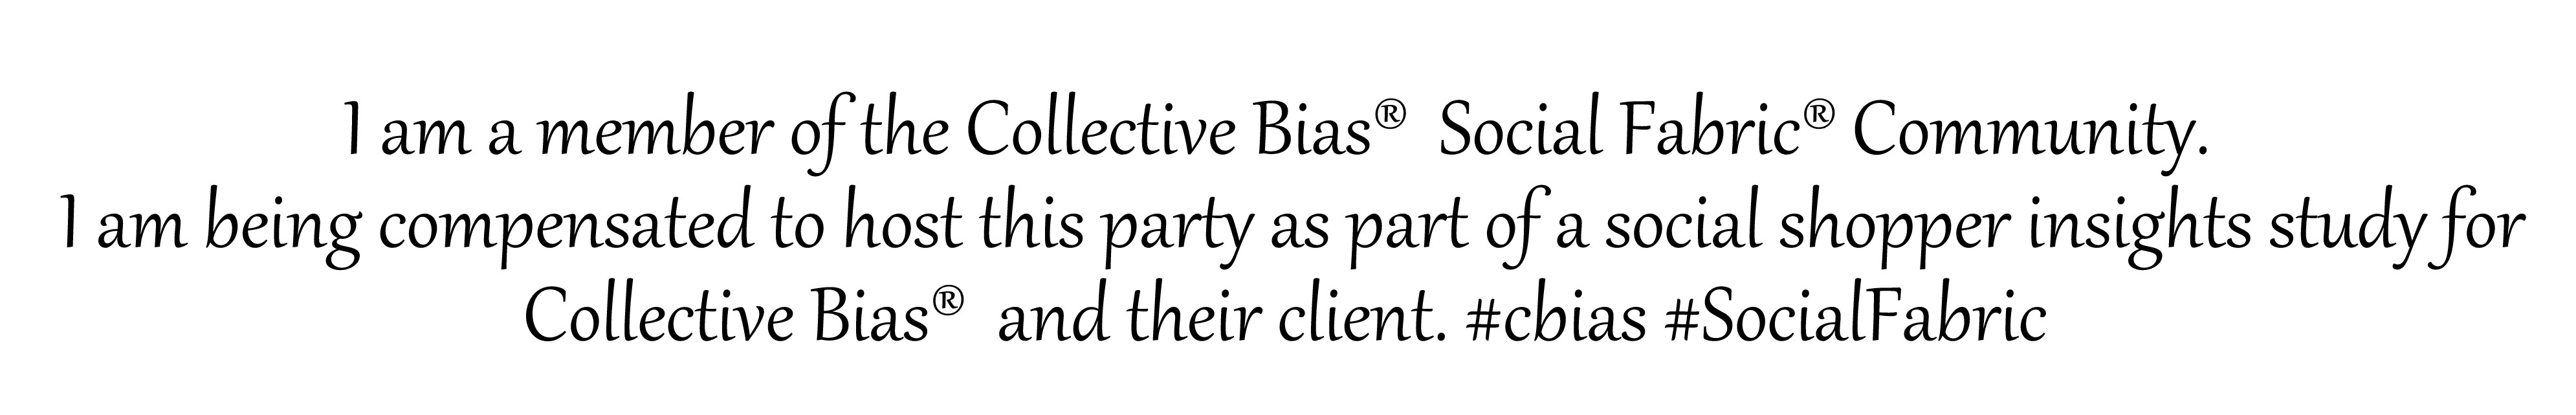 #TwitterParty-Disclosure #shop #cbias